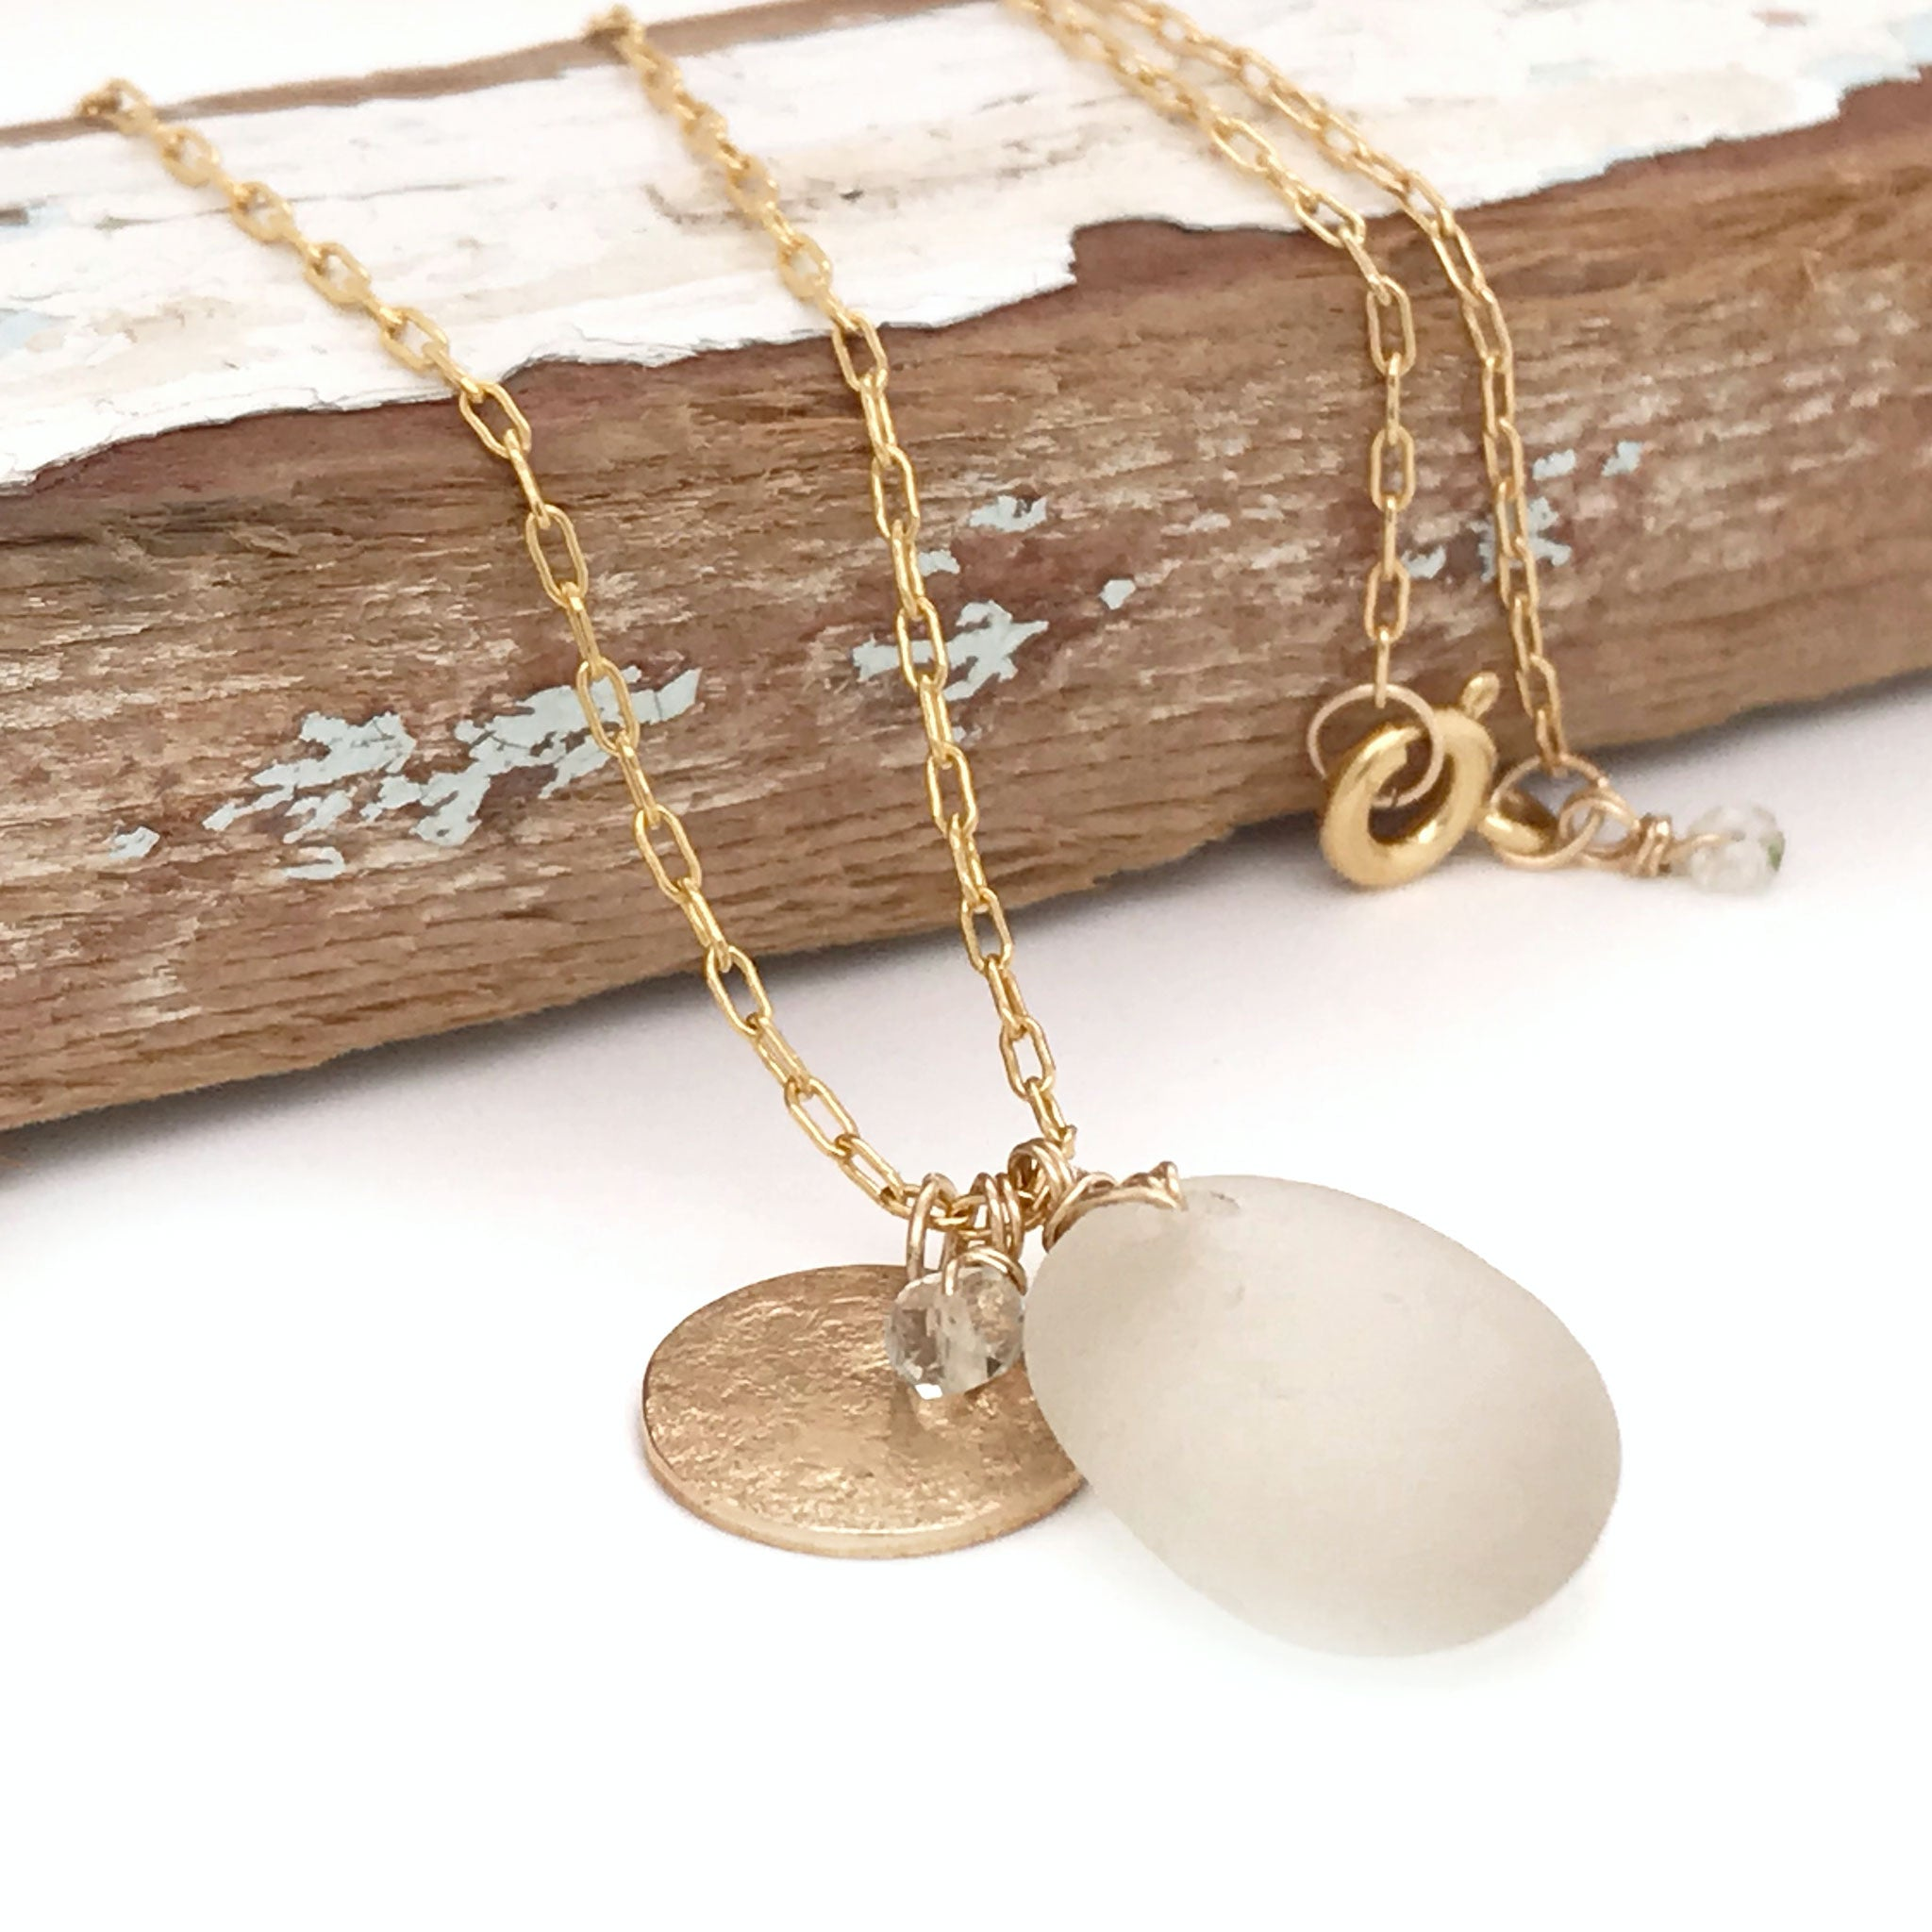 clear seaglass necklace gold chain with gold disc charm Kriket Broadhurst jewellery